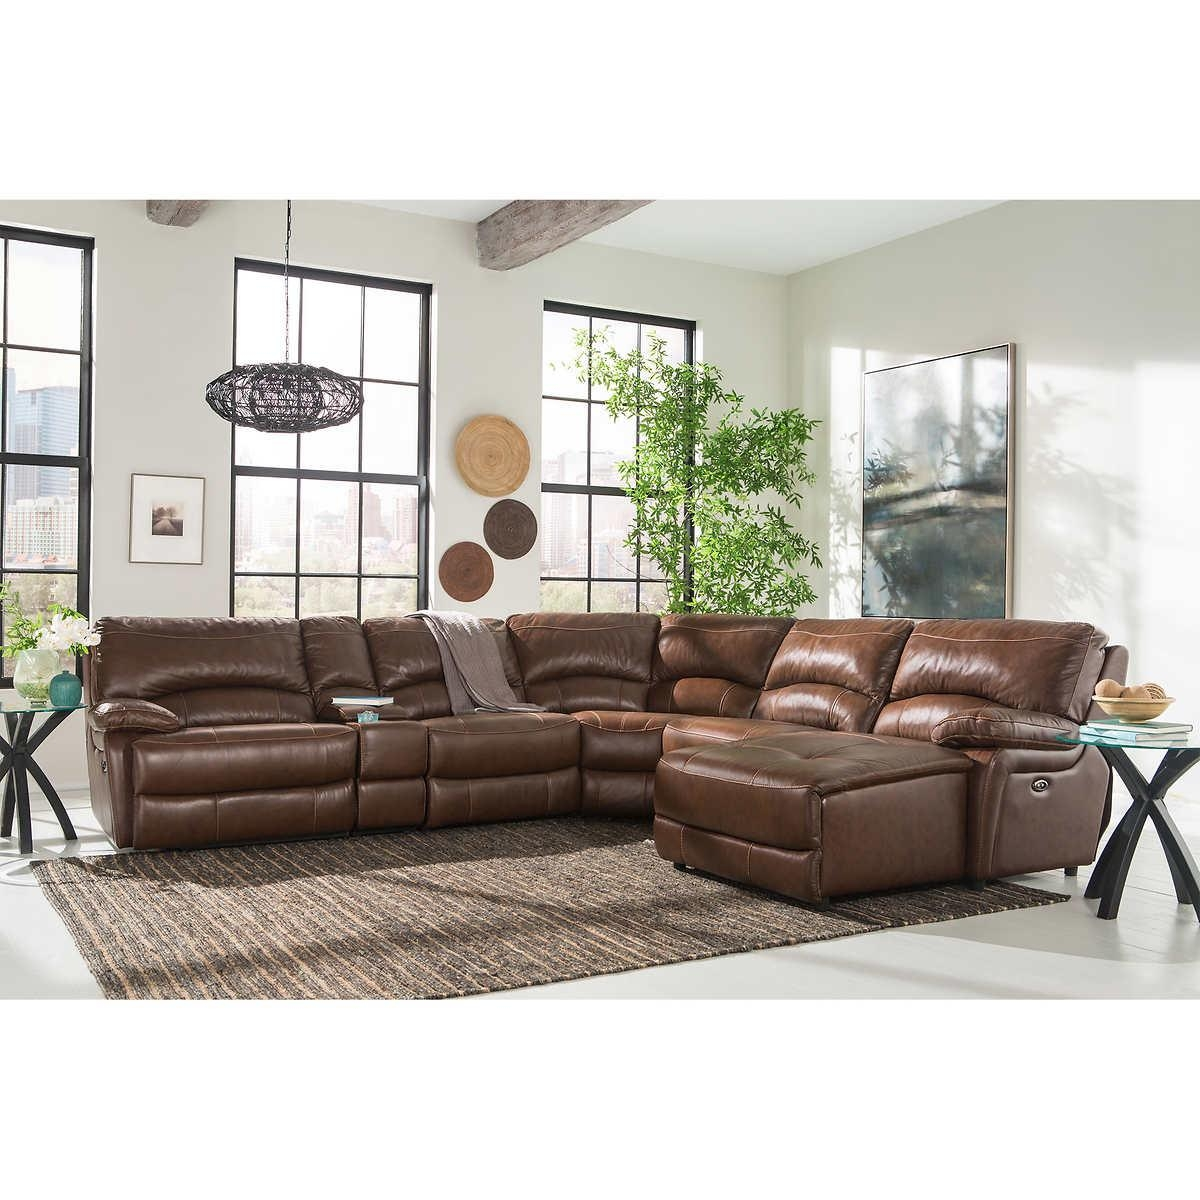 Sectional Leather Sofas | Tehranmix Decoration With Regard To Sofas And Sectionals (View 3 of 20)